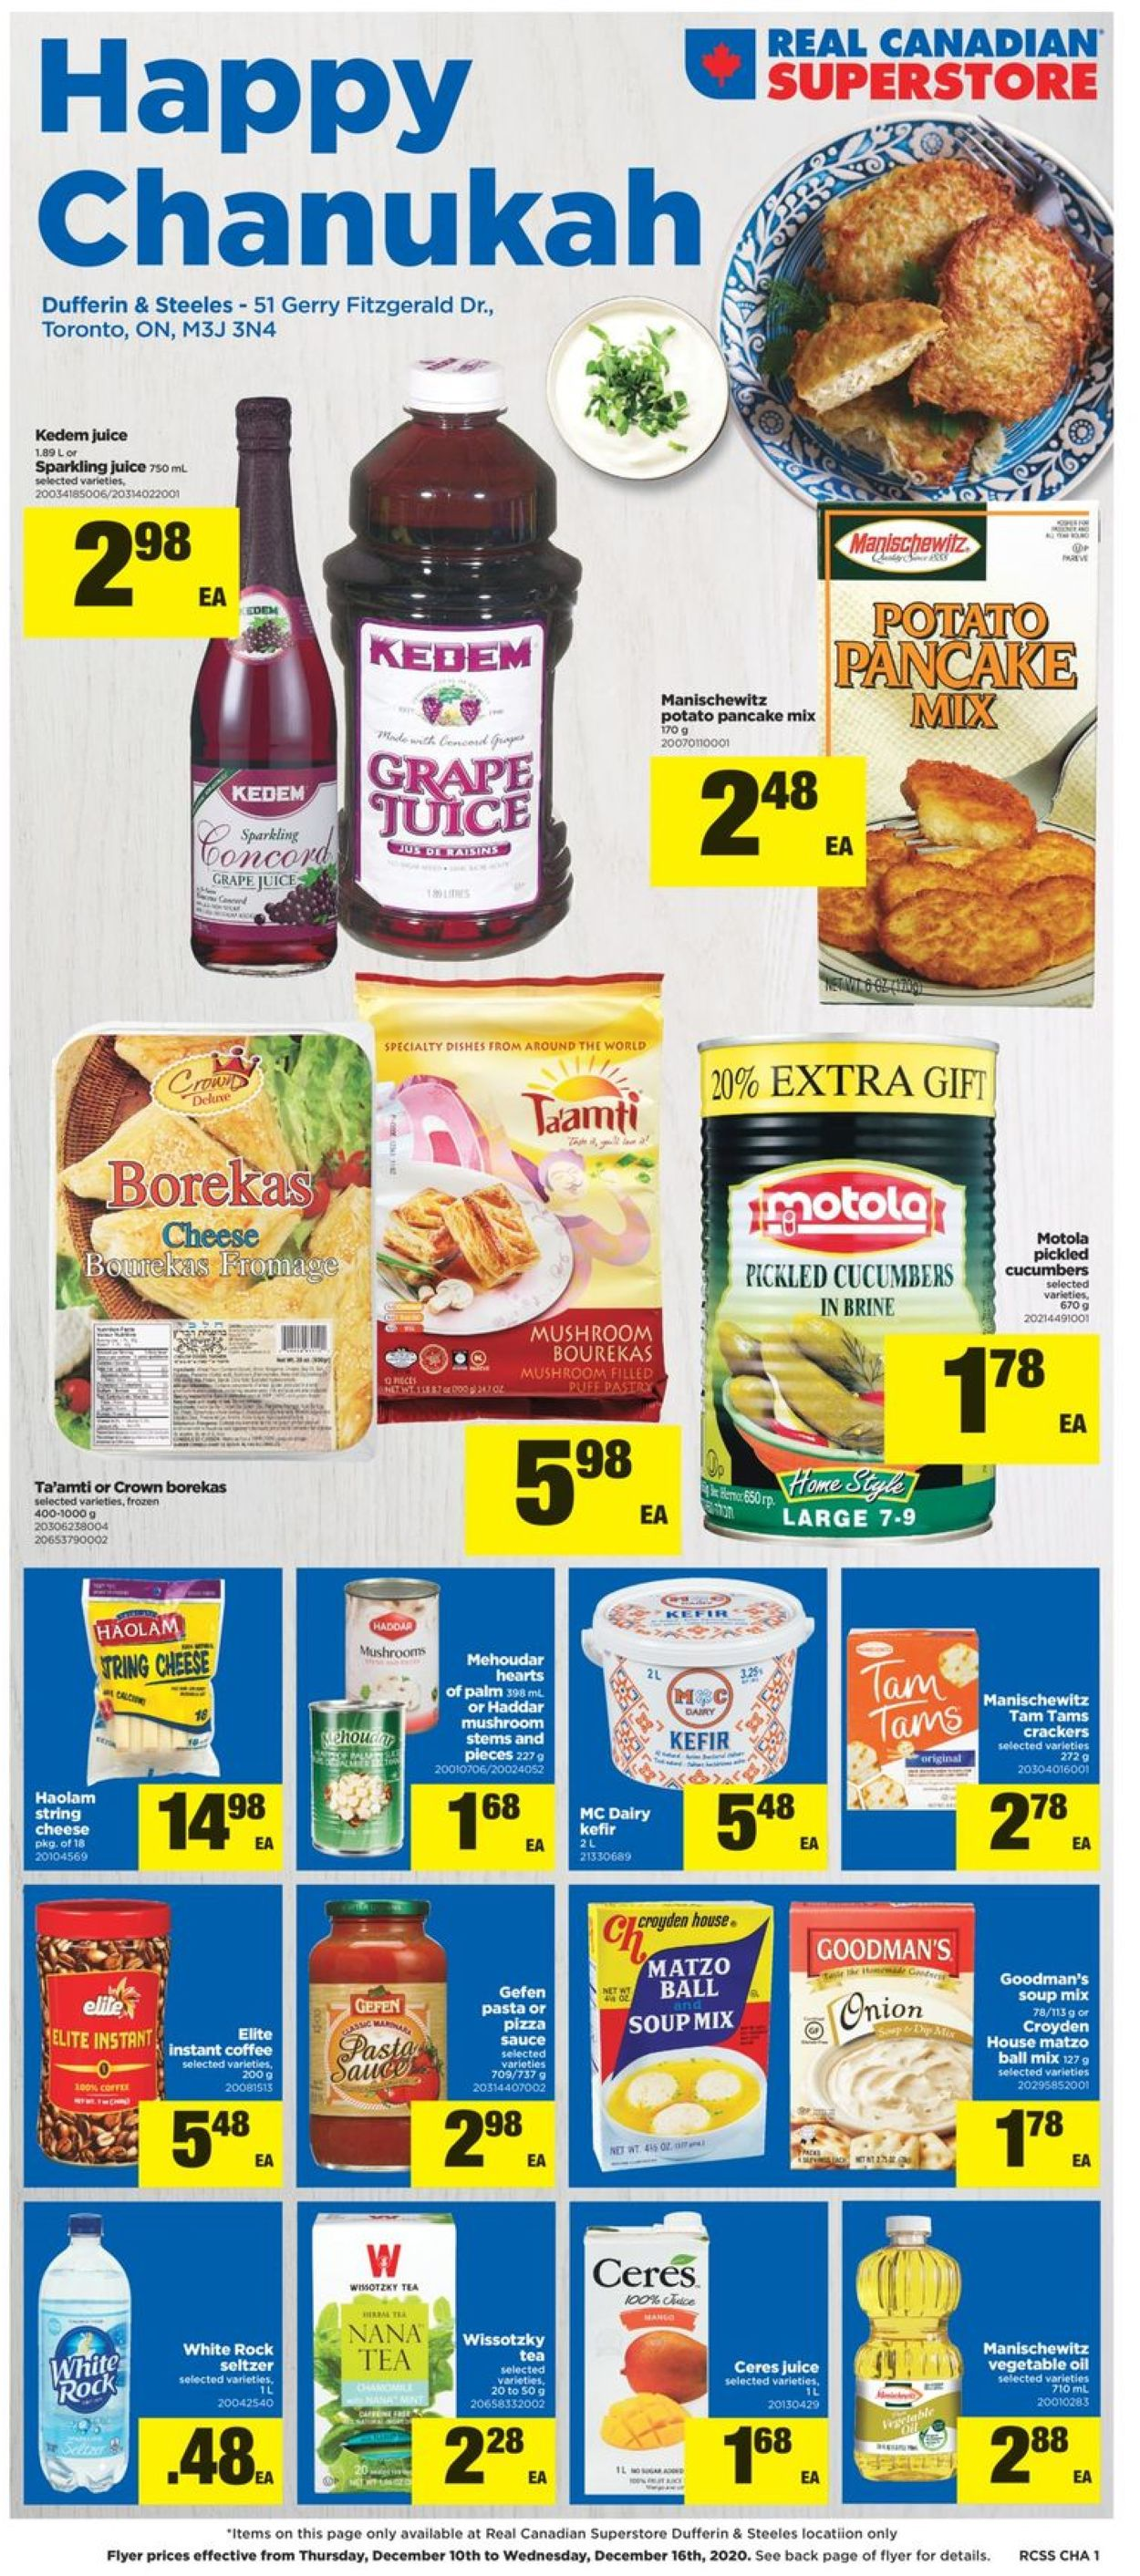 Real Canadian Superstore - Chanukah 2020 Flyer - 12/10-12/16/2020